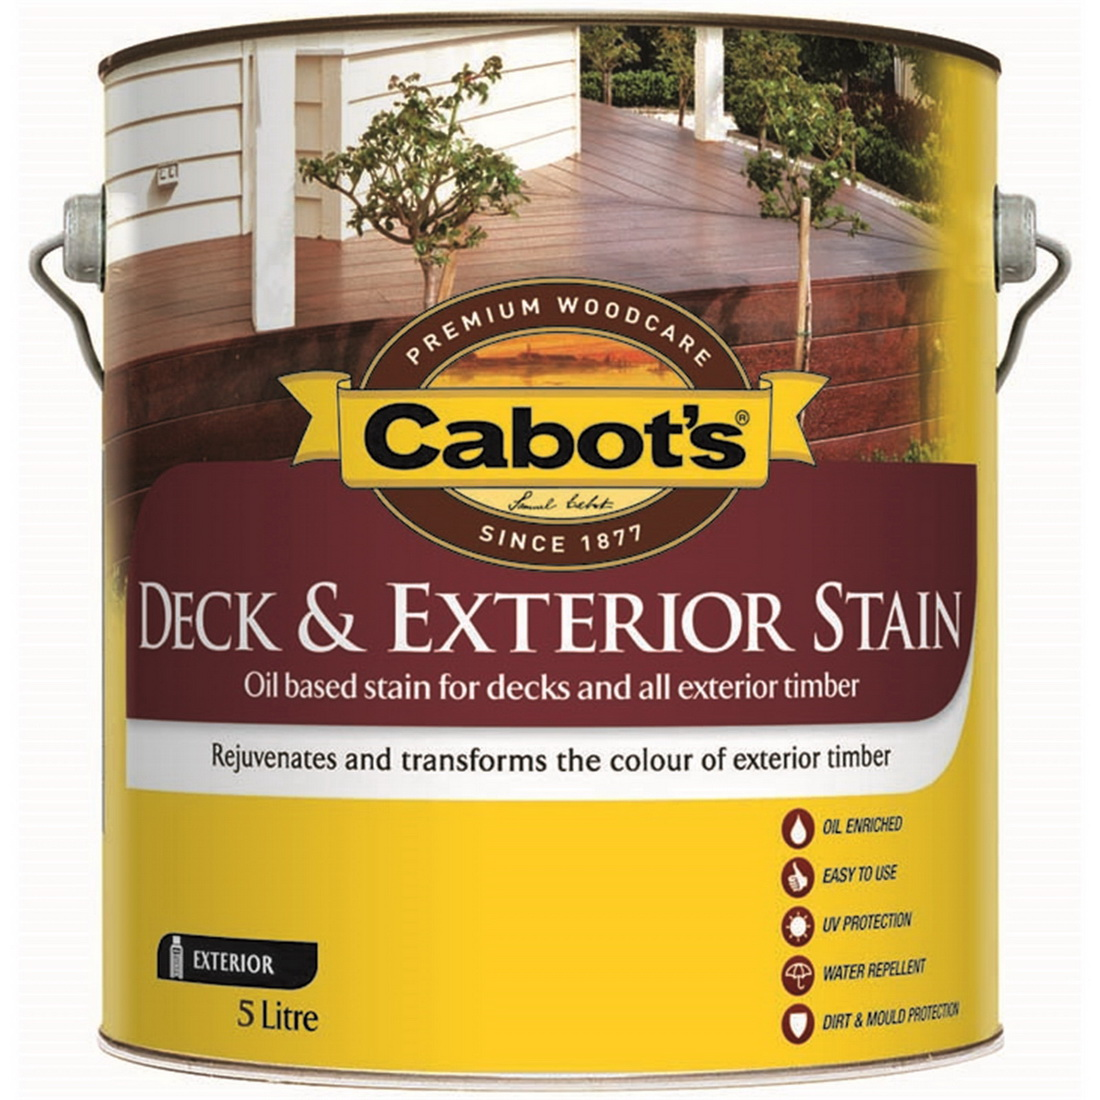 Deck & Exterior Stain Oil Based Charcoal 5L 826W0113-5L